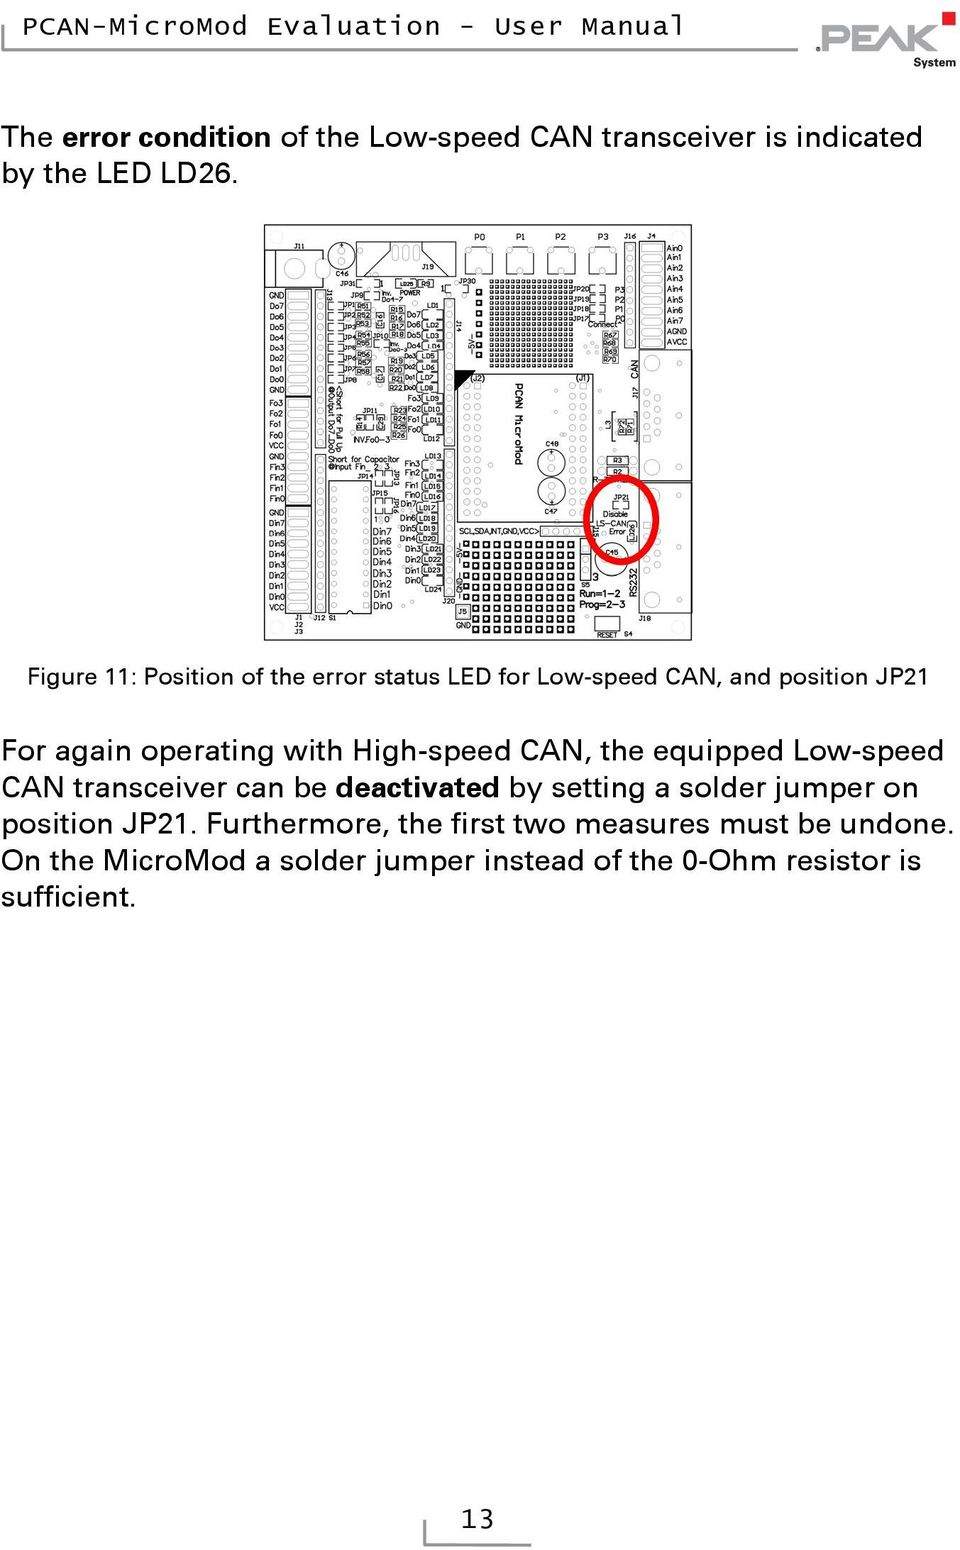 High-speed CAN, the equipped Low-speed CAN transceiver can be deactivated by setting a solder jumper on